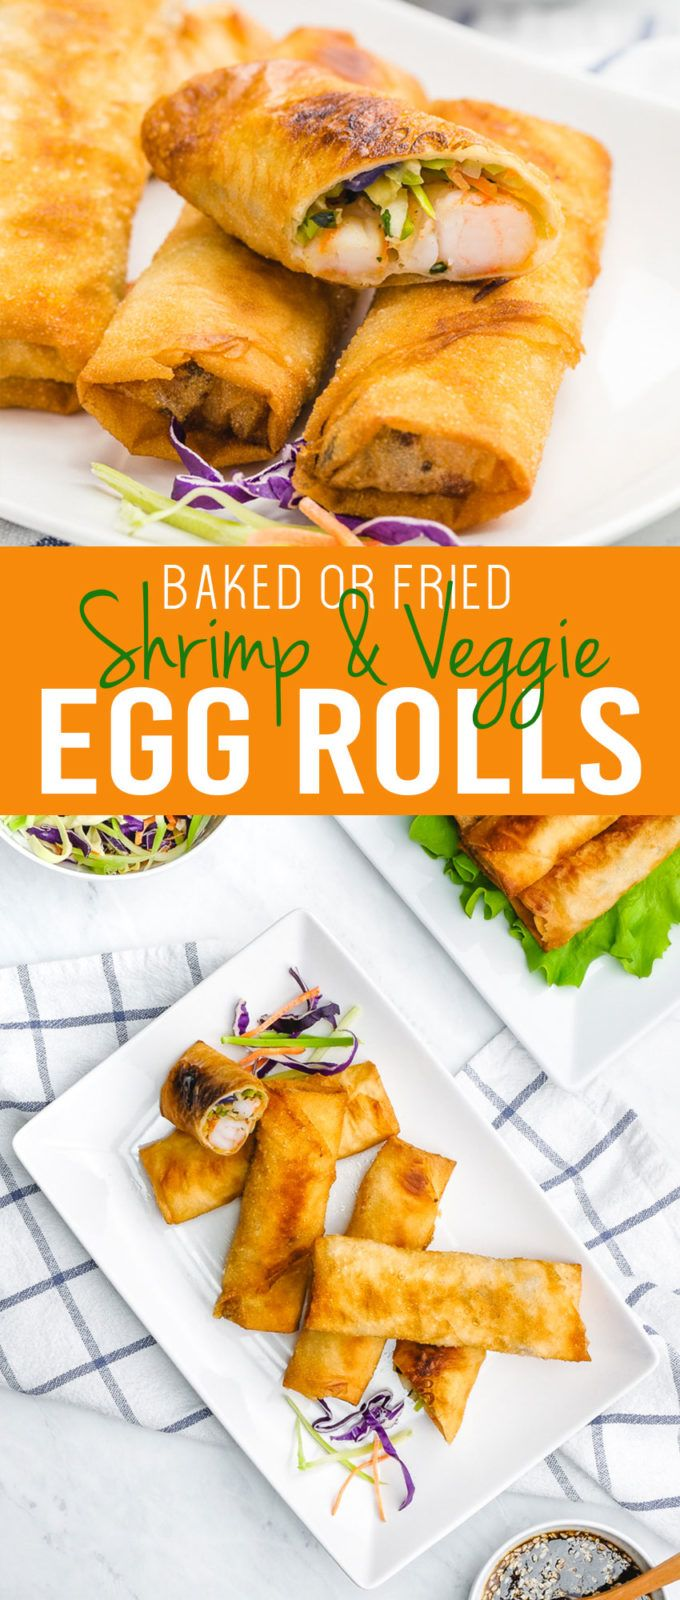 Baked or Fried Shrimp and Veggie Egg Rolls #eggrolls